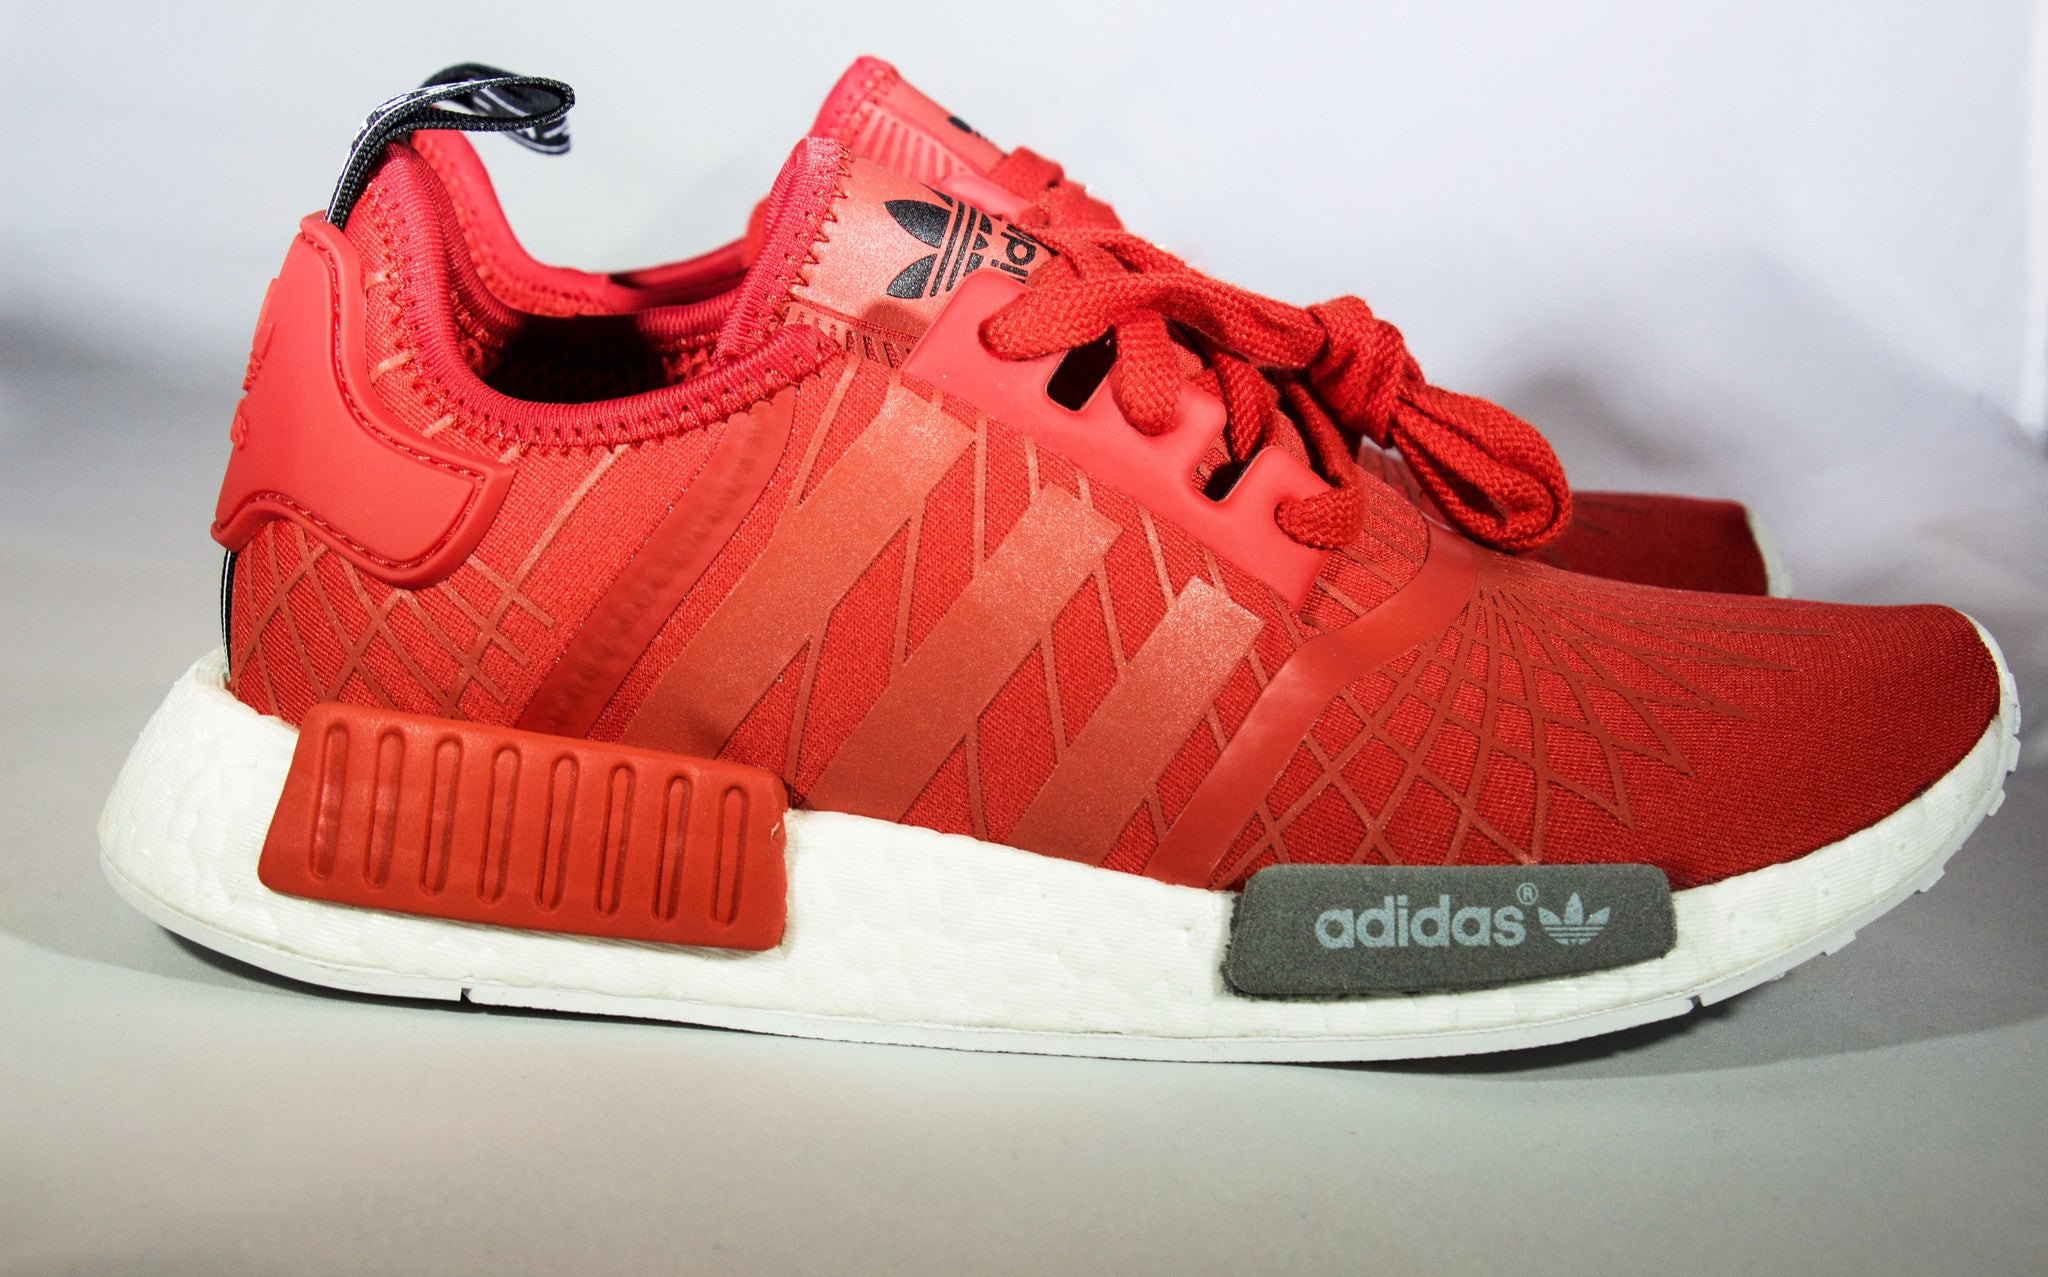 the best attitude 0afbf ae99a Adidas NMD Runner R1 Lush Red Womens